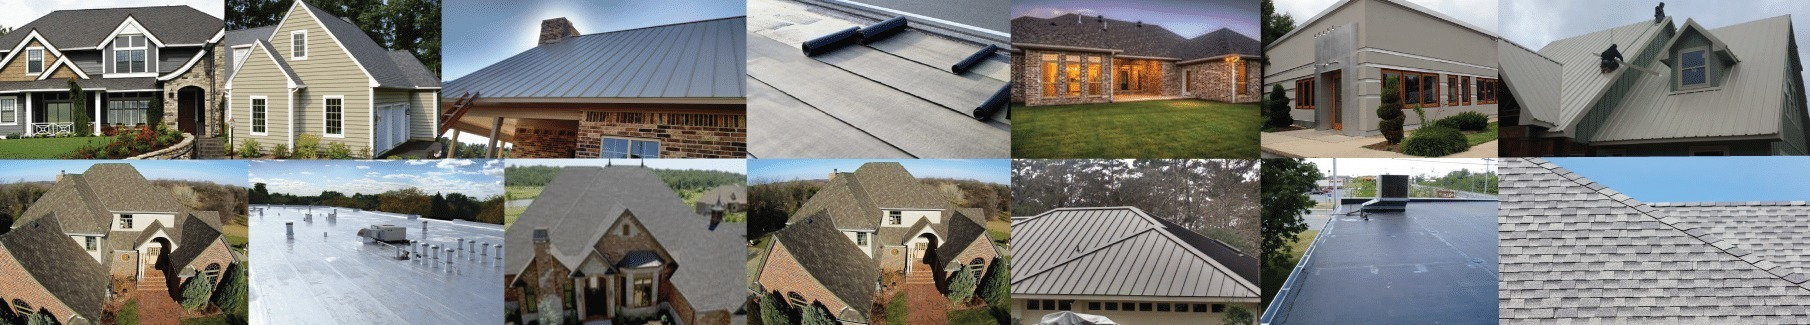 Gordy Roofing Longview TX (@gordyroofing20) Cover Image